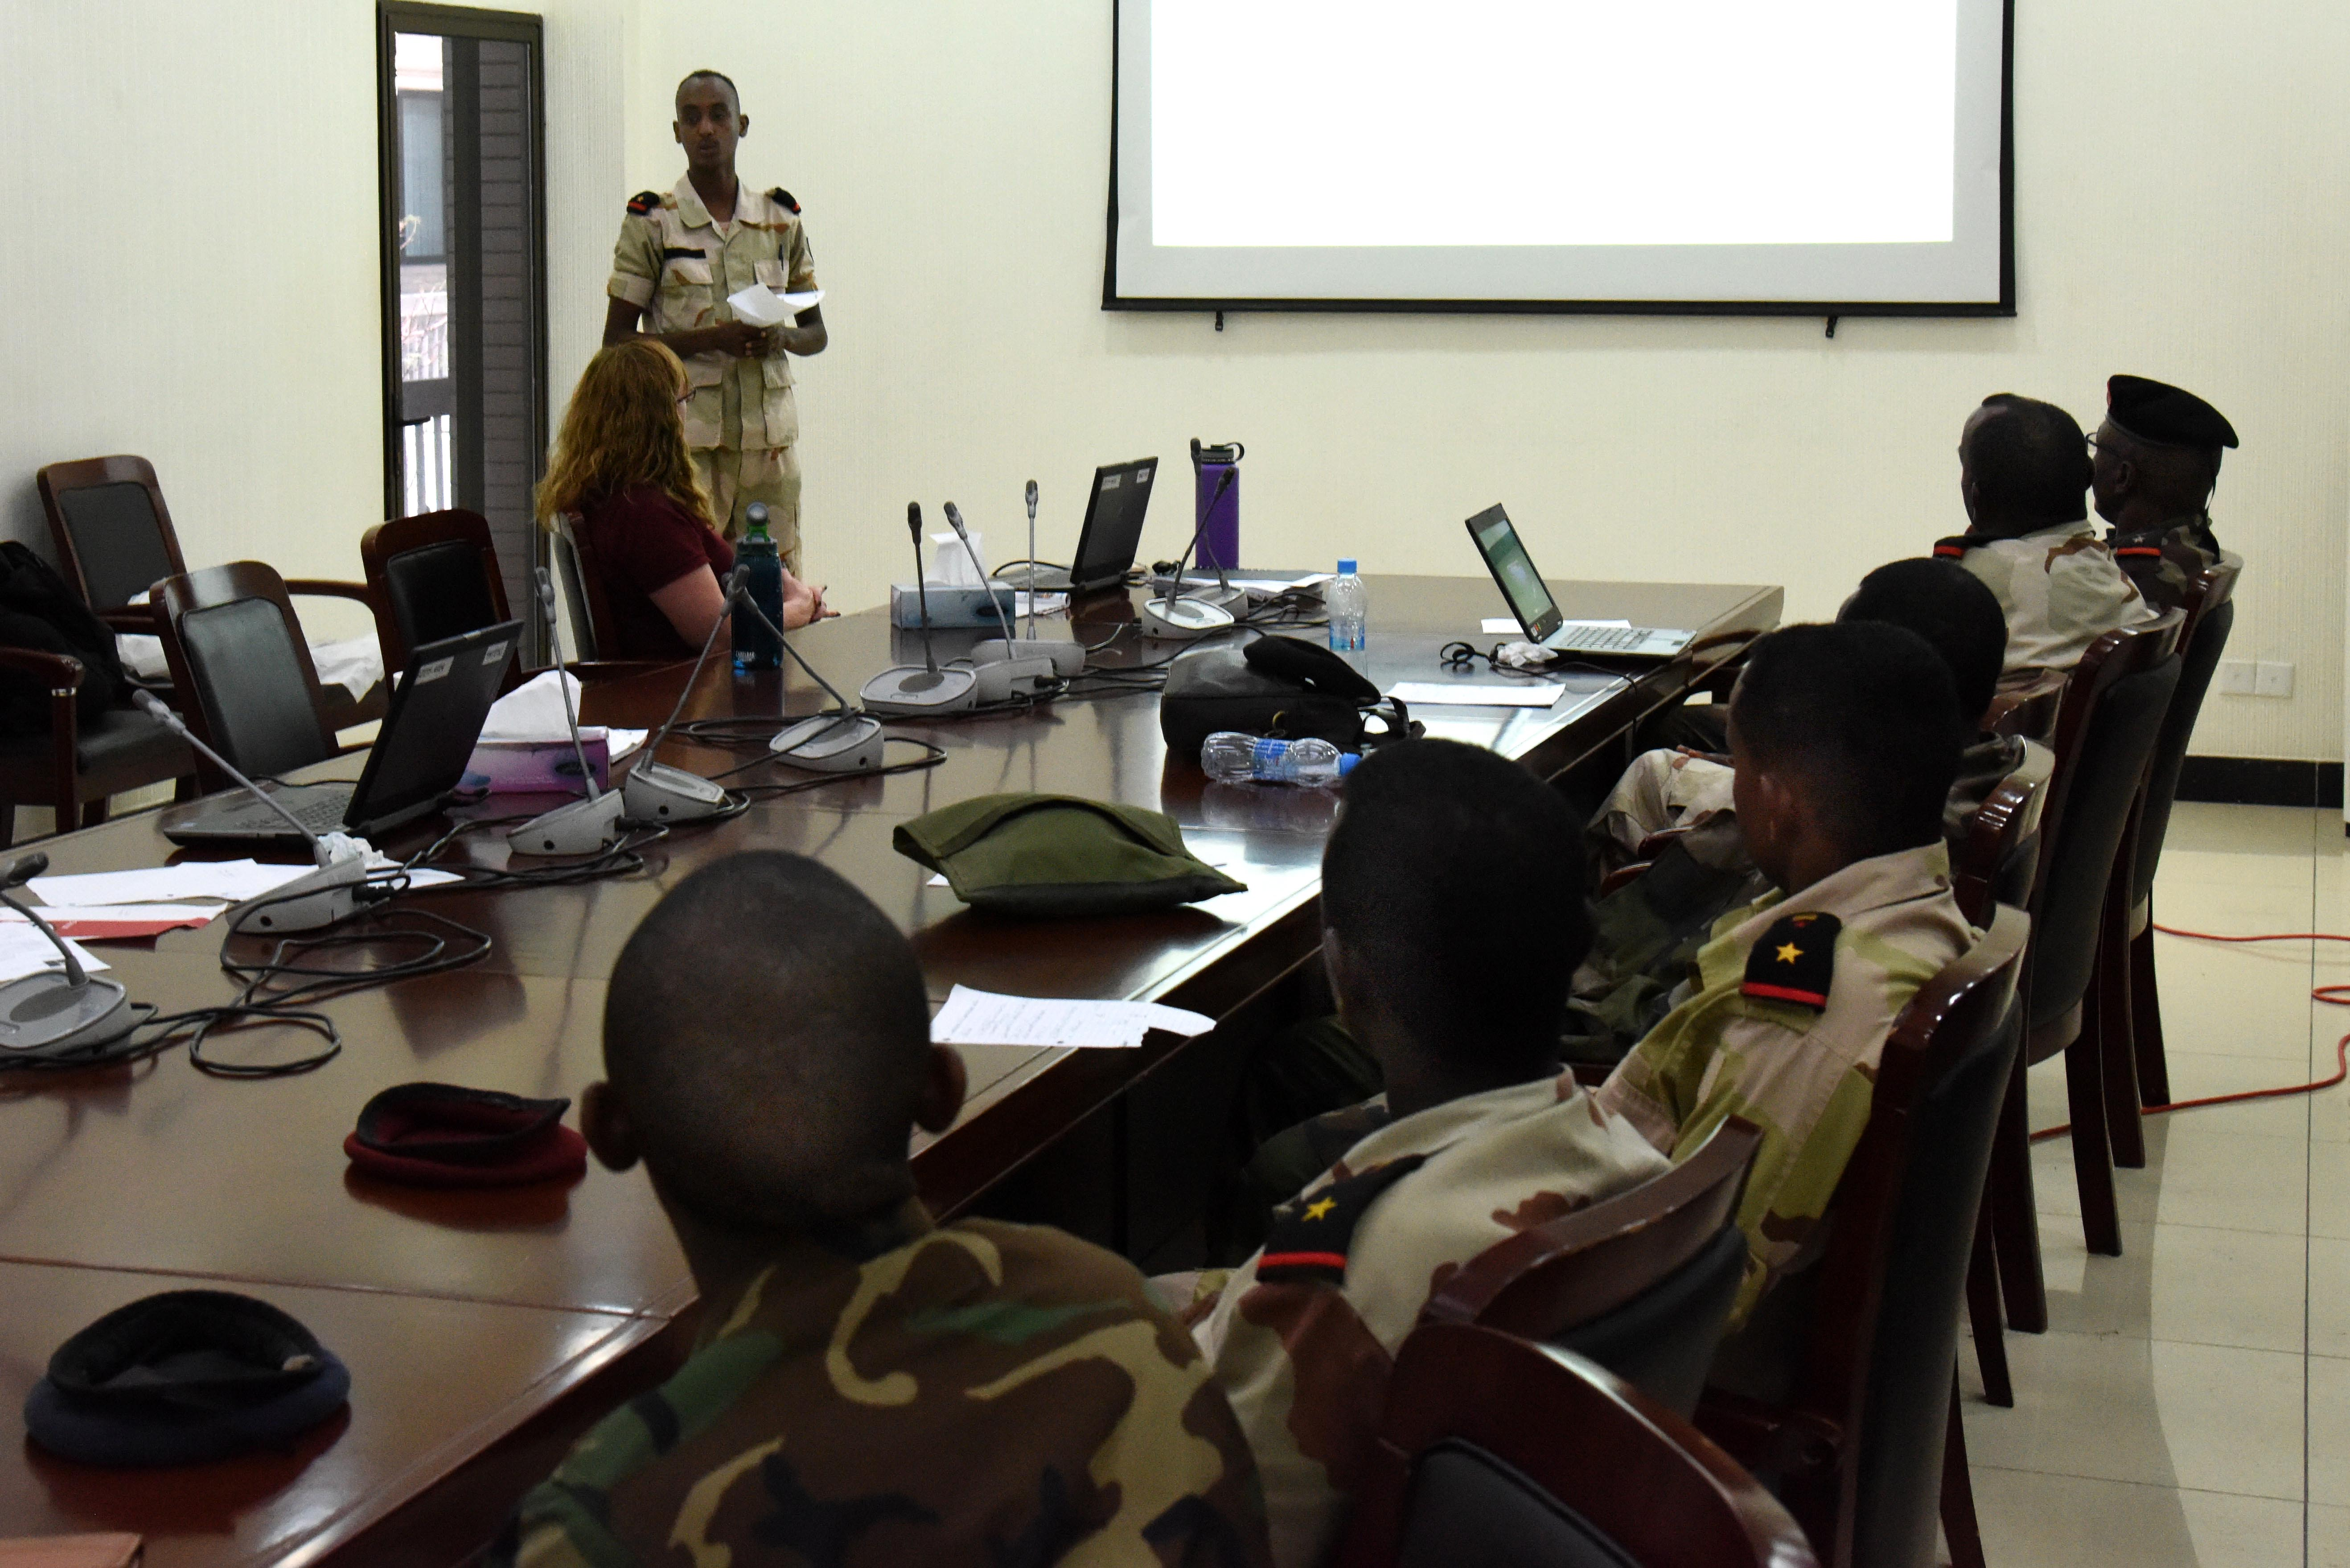 A Djiboutian Armed Forces (FAD) member presents information gathered from open sources during an open source intelligence course at the People's Palace, Djibouti, March 5-10, 2016. More than 15 FAD members learned to gather pertinent information from Internet sources such as search engines, use of geospatial imagery, social media, and other publications. (U.S. Air Force photo by Staff Sgt. Victoria Sneed)